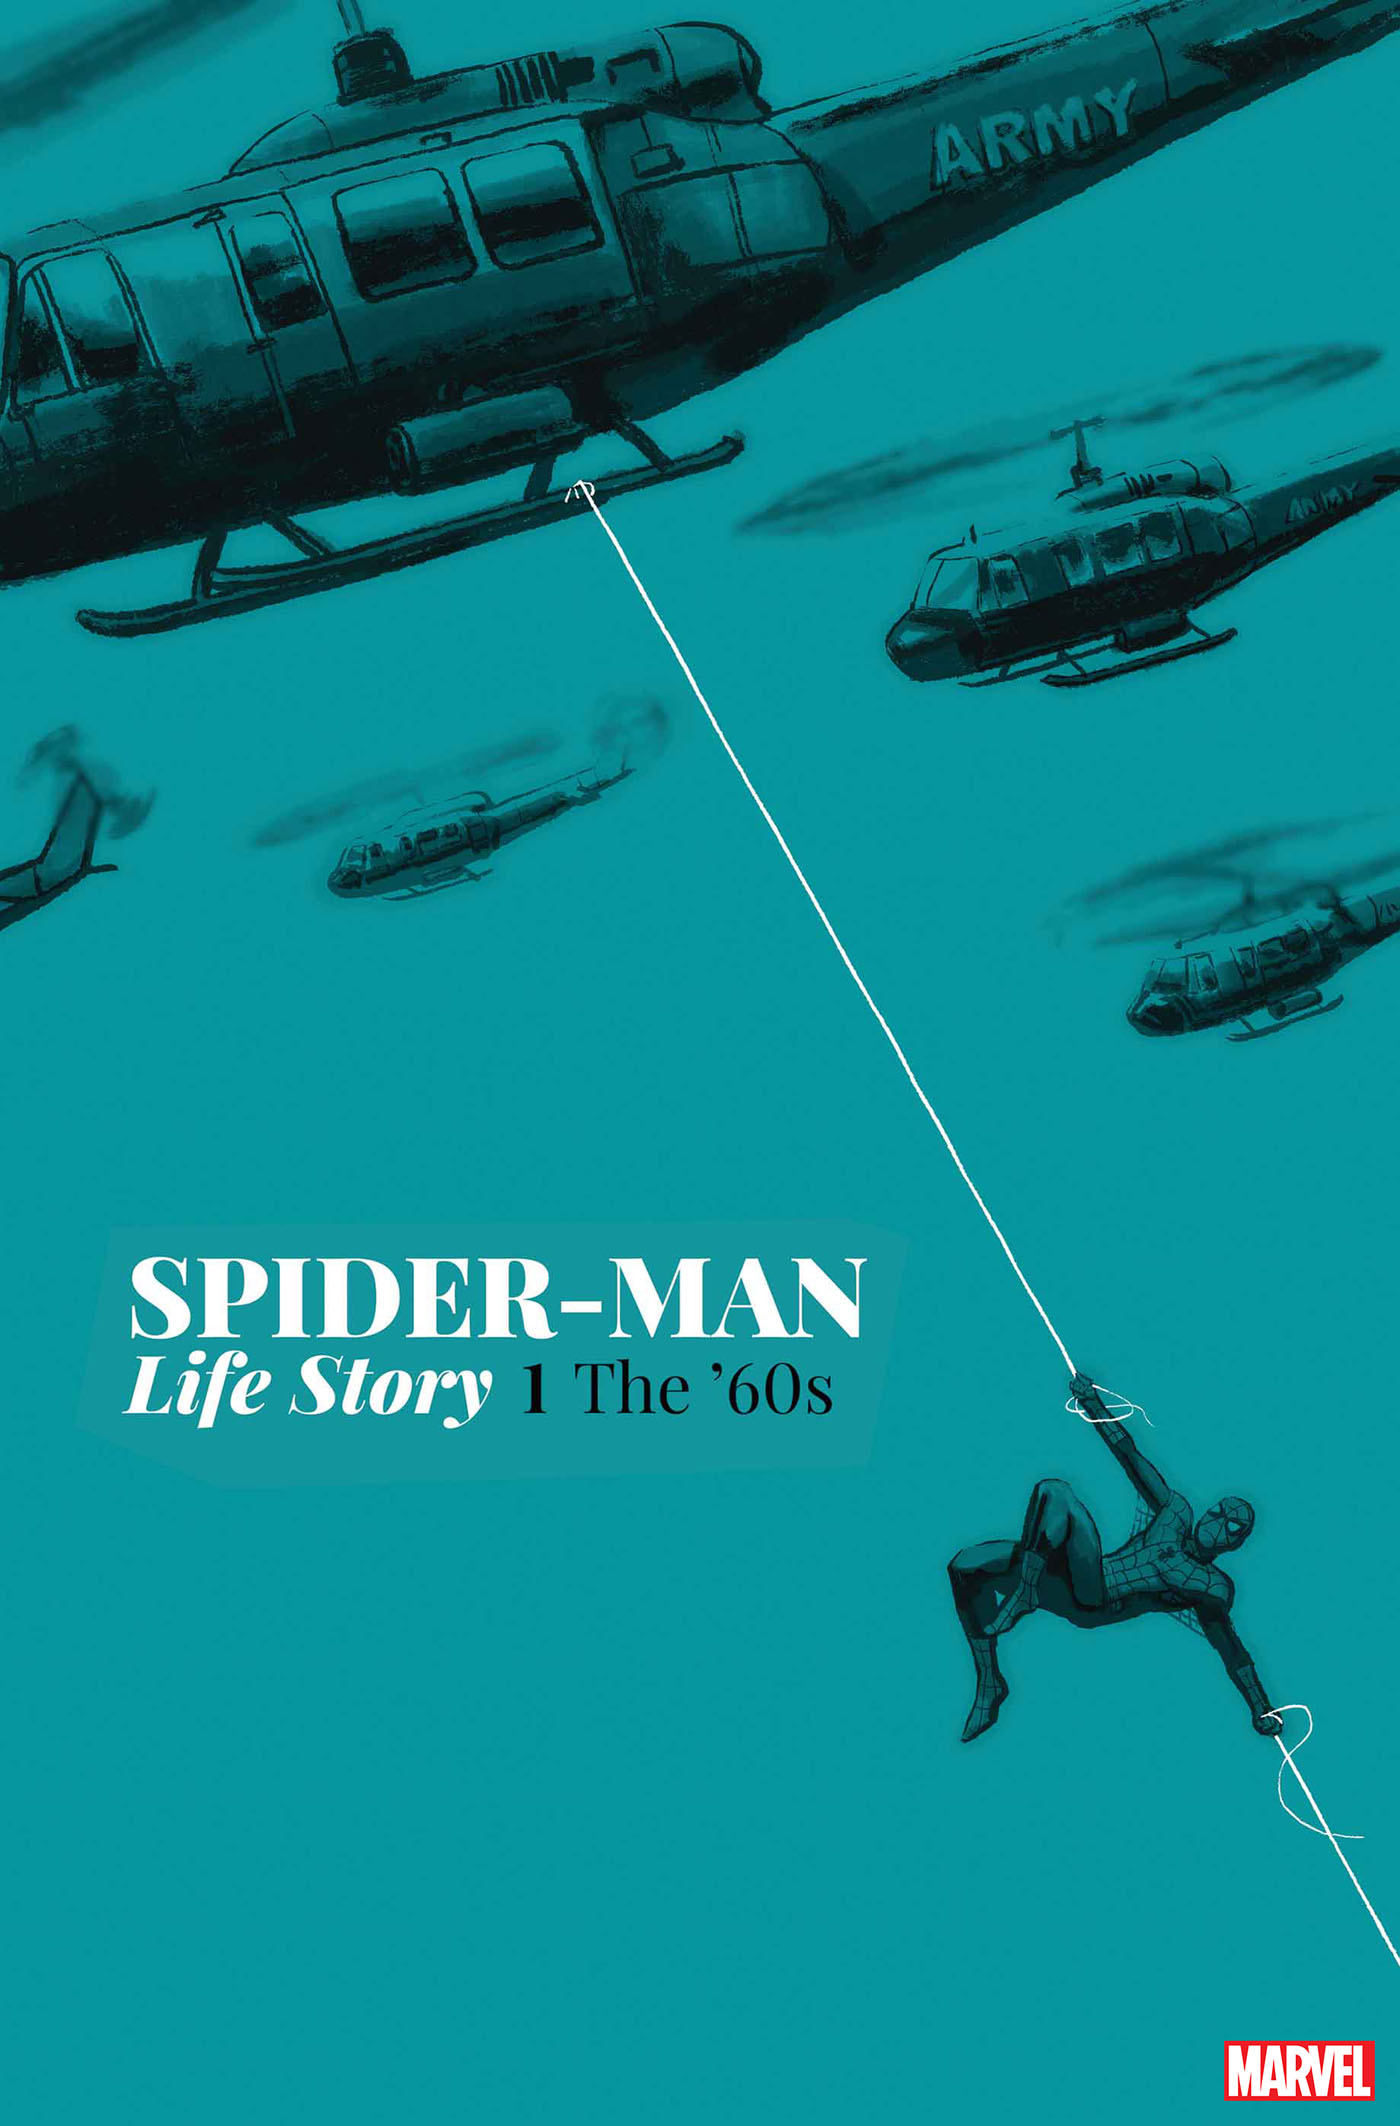 Spider-Man: Life Story Sends Marvel's Wall-Crawler Back To the '60s